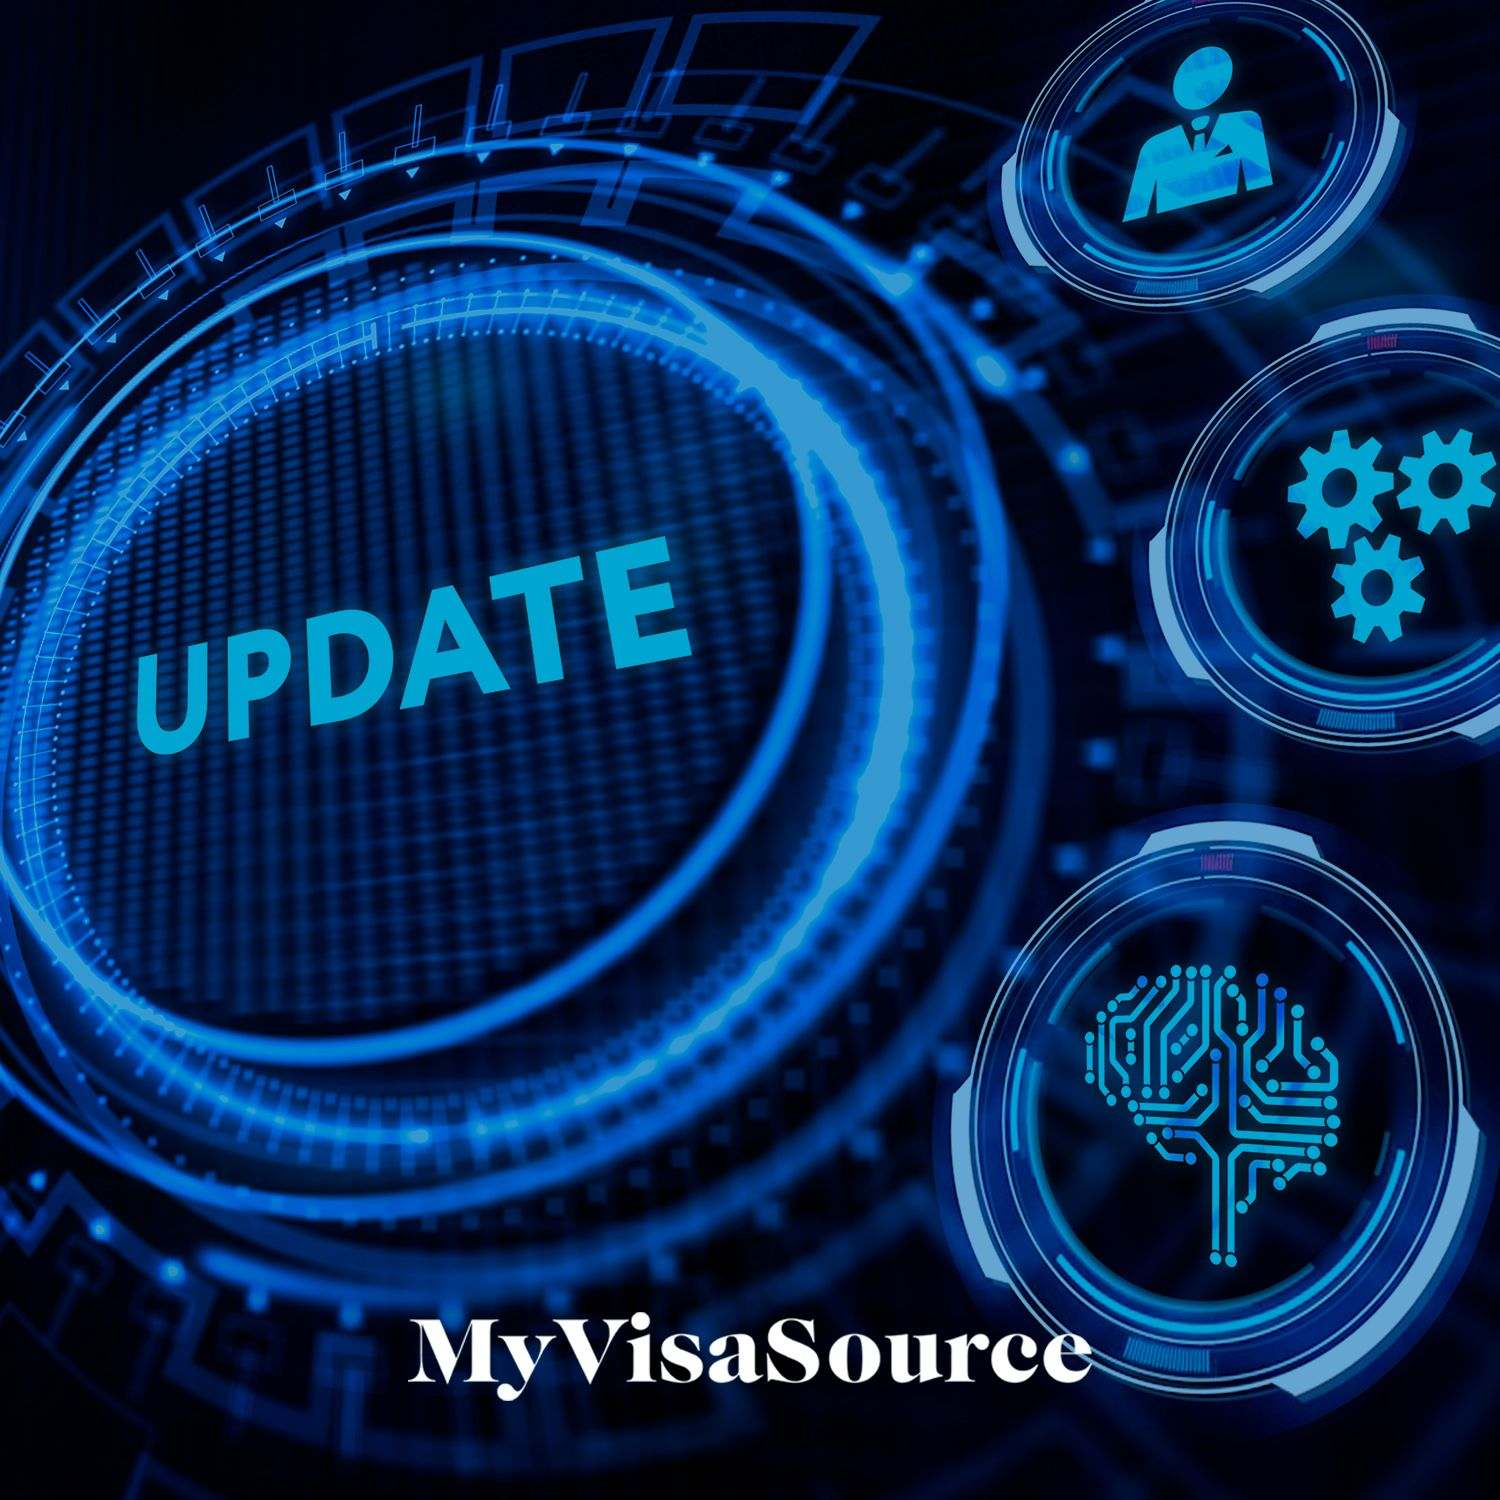 digital dials and one has update written on it my visa source